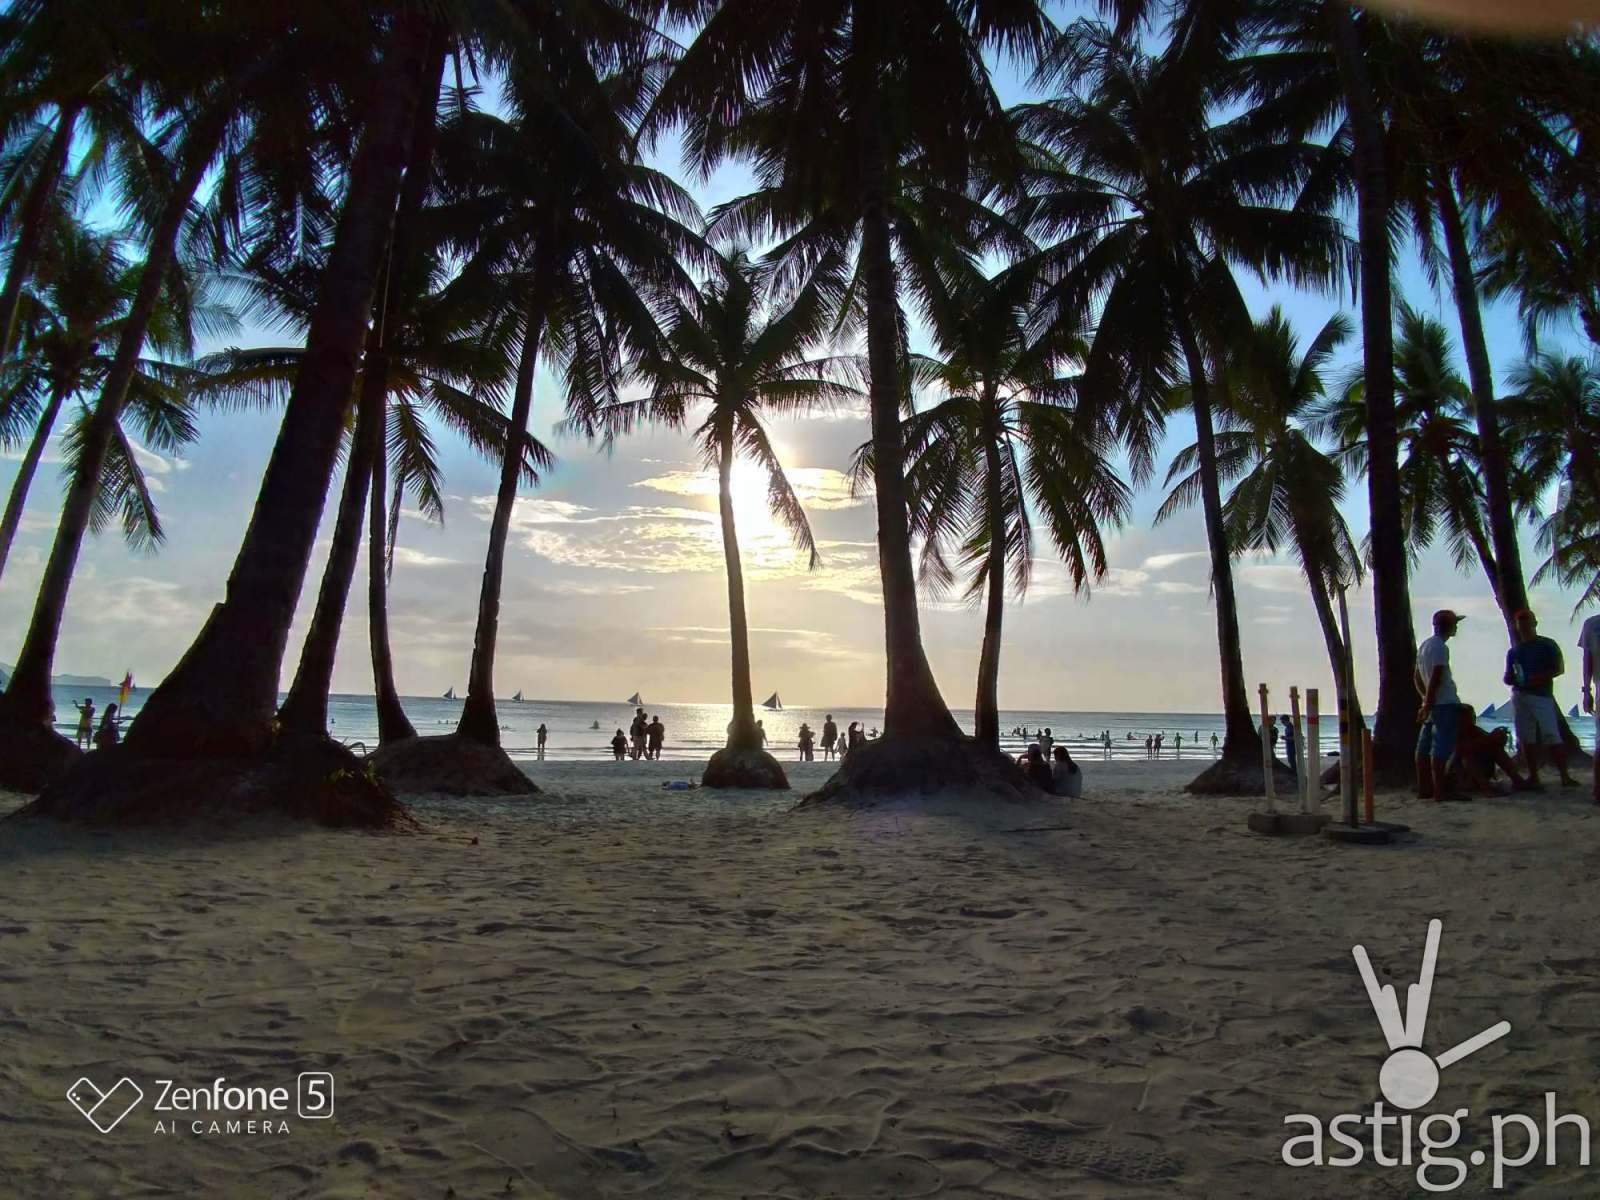 Boracay Philippines re-opening smartphone photo taken on an ASUS ZenFone 5 by Den Uy of TechKuya